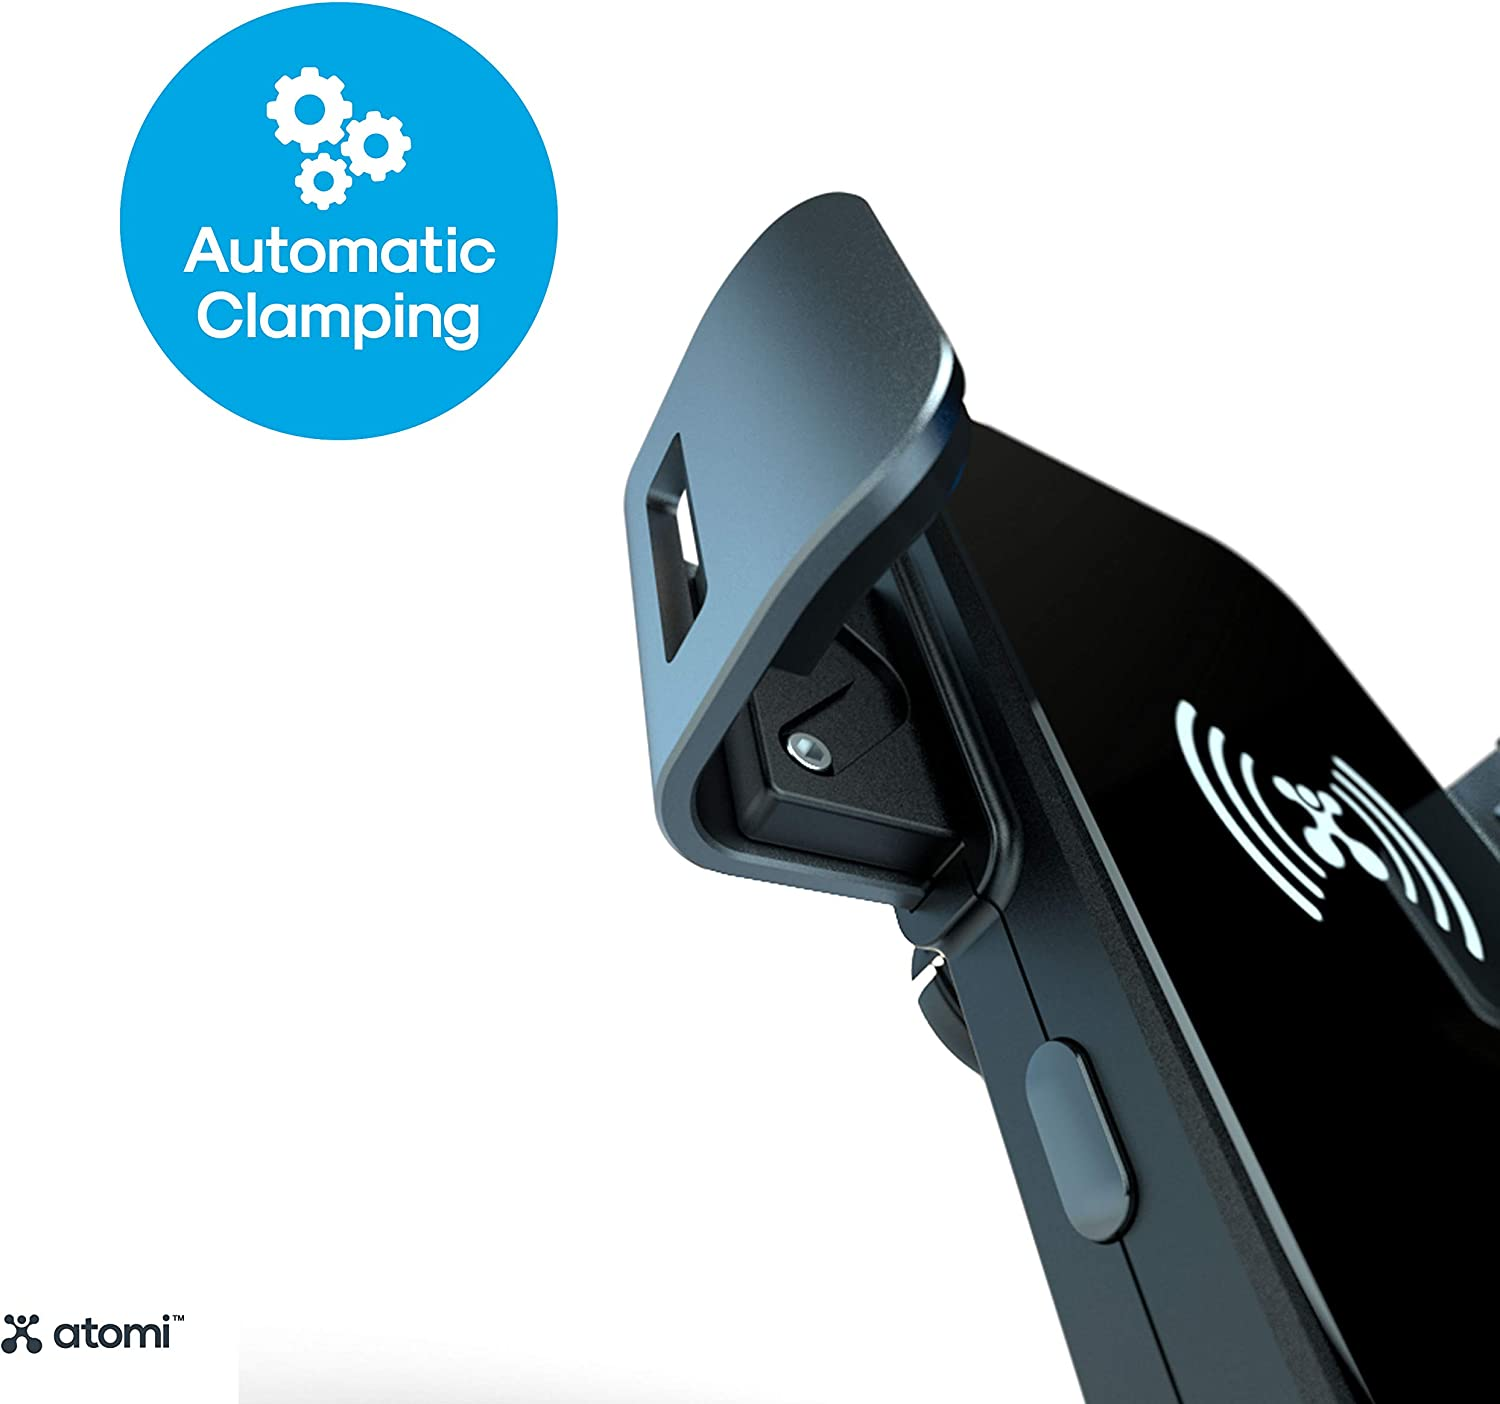 360/° Rotation Qualcomm Quick Charge 3.0 Atomi Qi Wireless Car Charger with 3-Way Mount Motorized Clamping Black Hands-Free Phone Mount